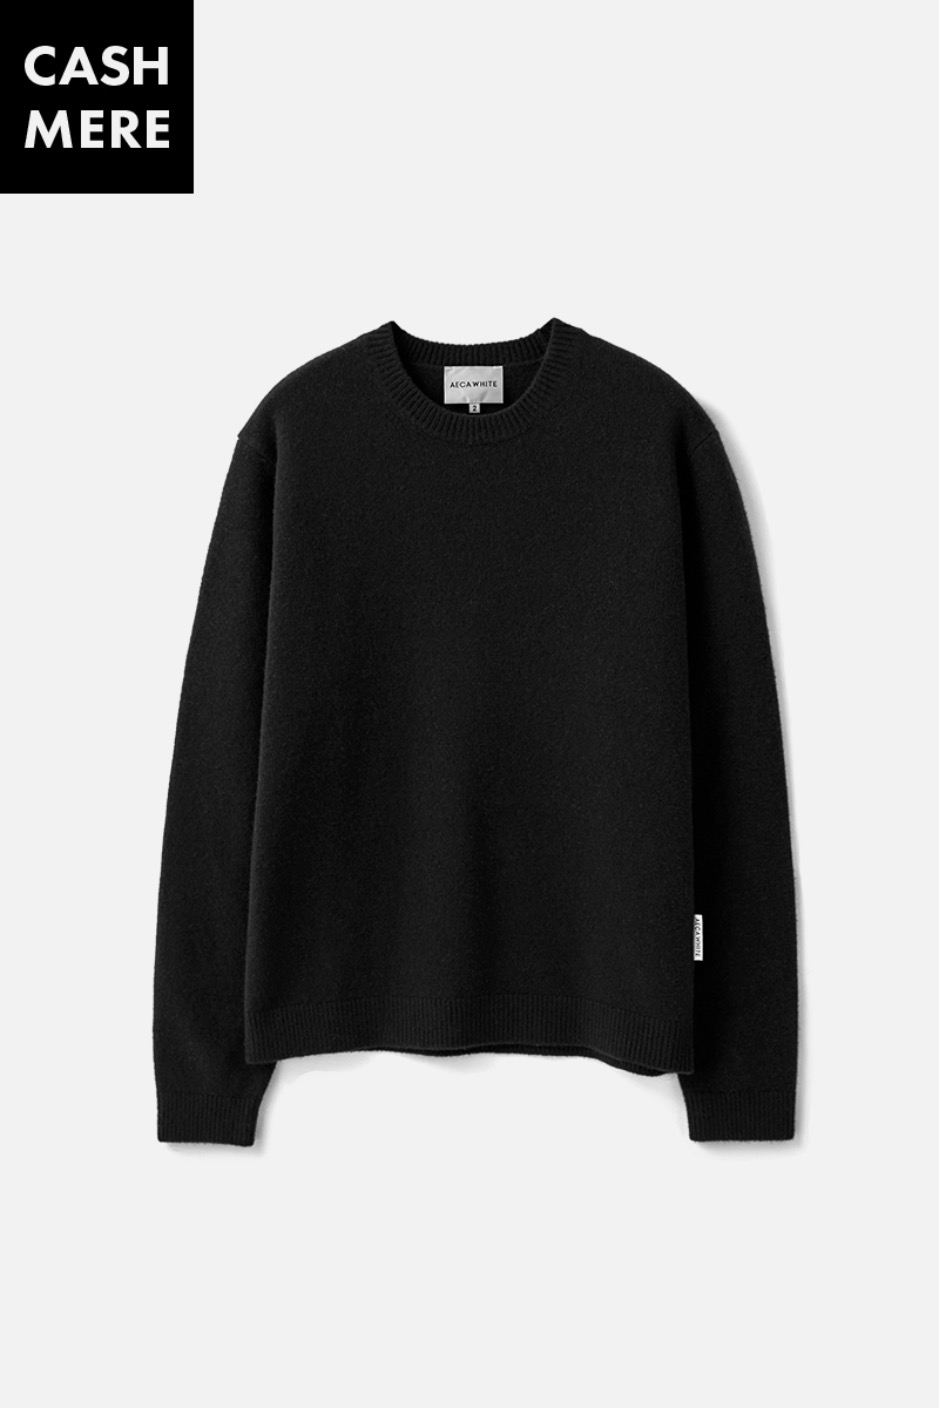 CASHMERE WOOL KNIT (Premium BASIC) -BLACK